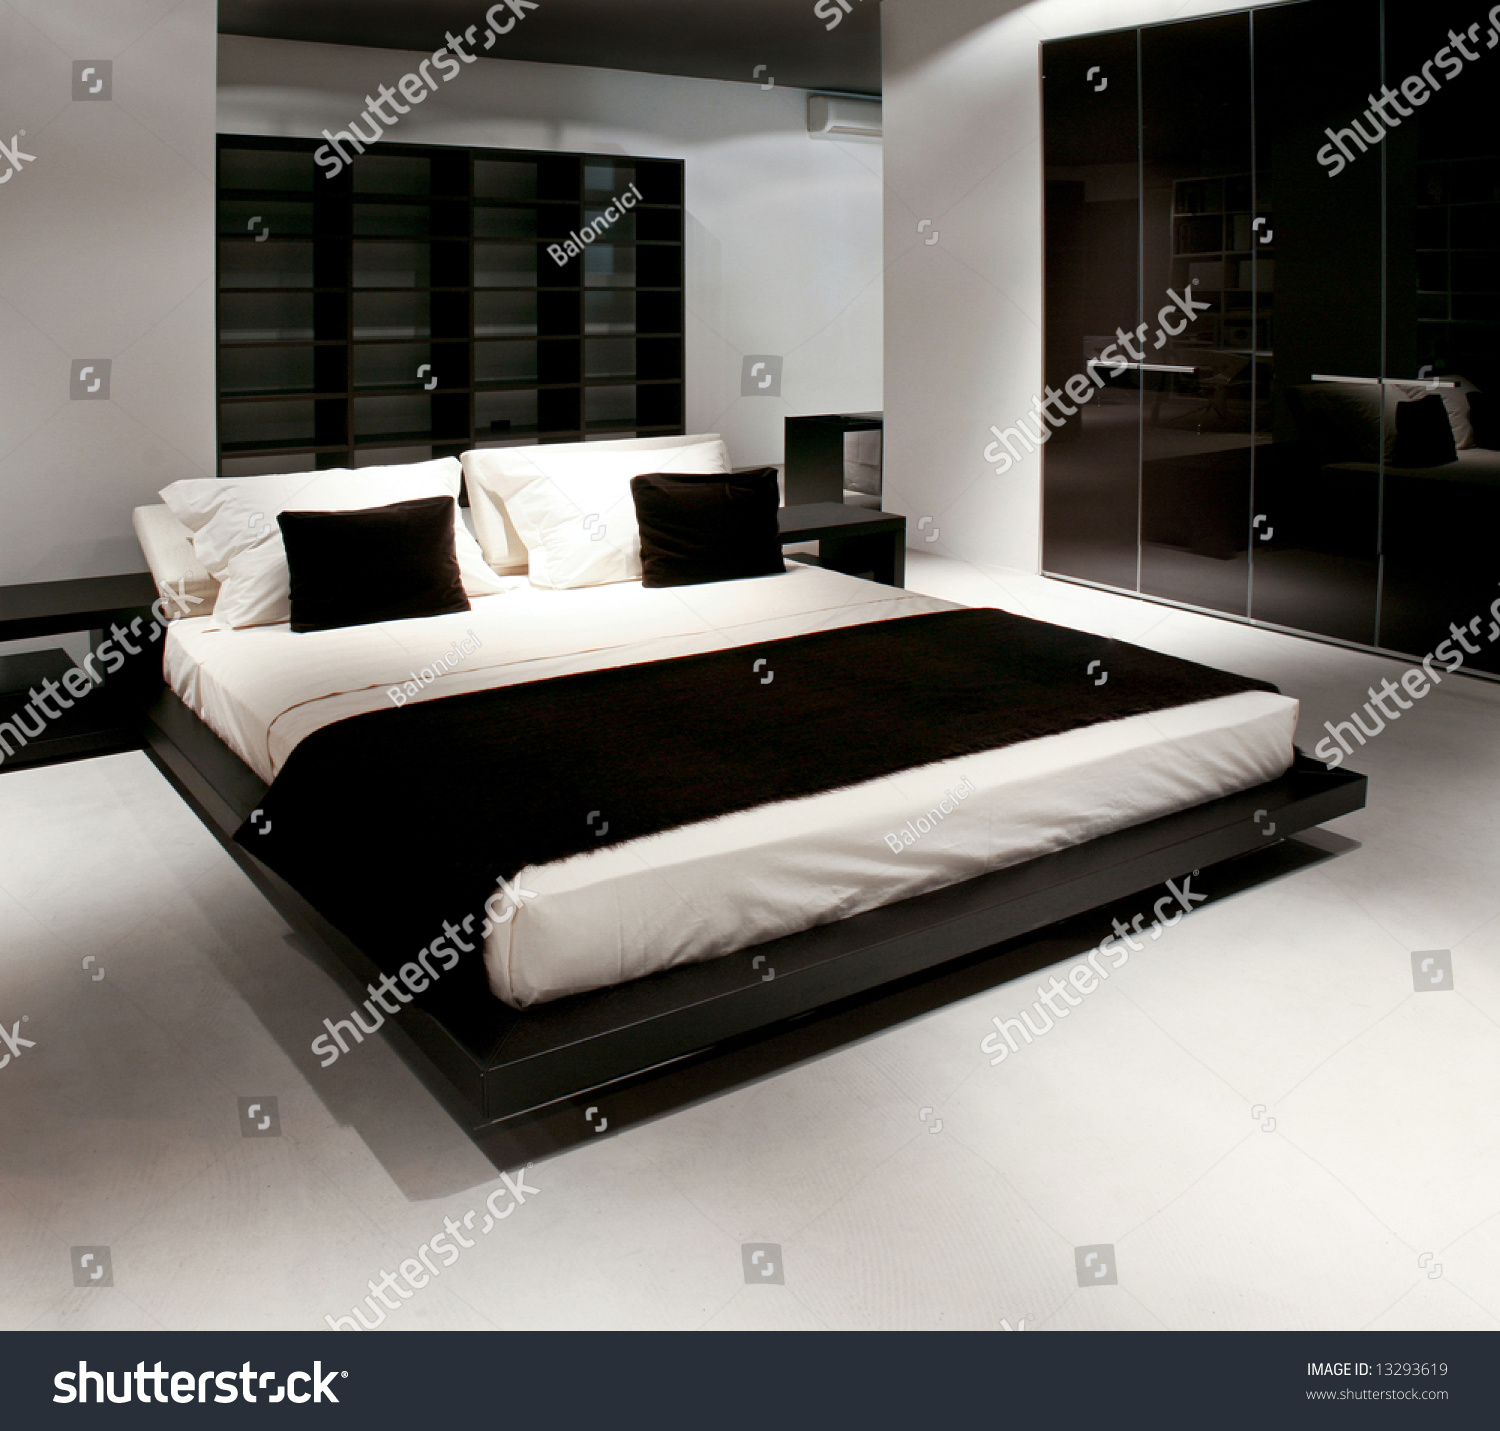 Double Bed And Wardrobe In Big Bedroom